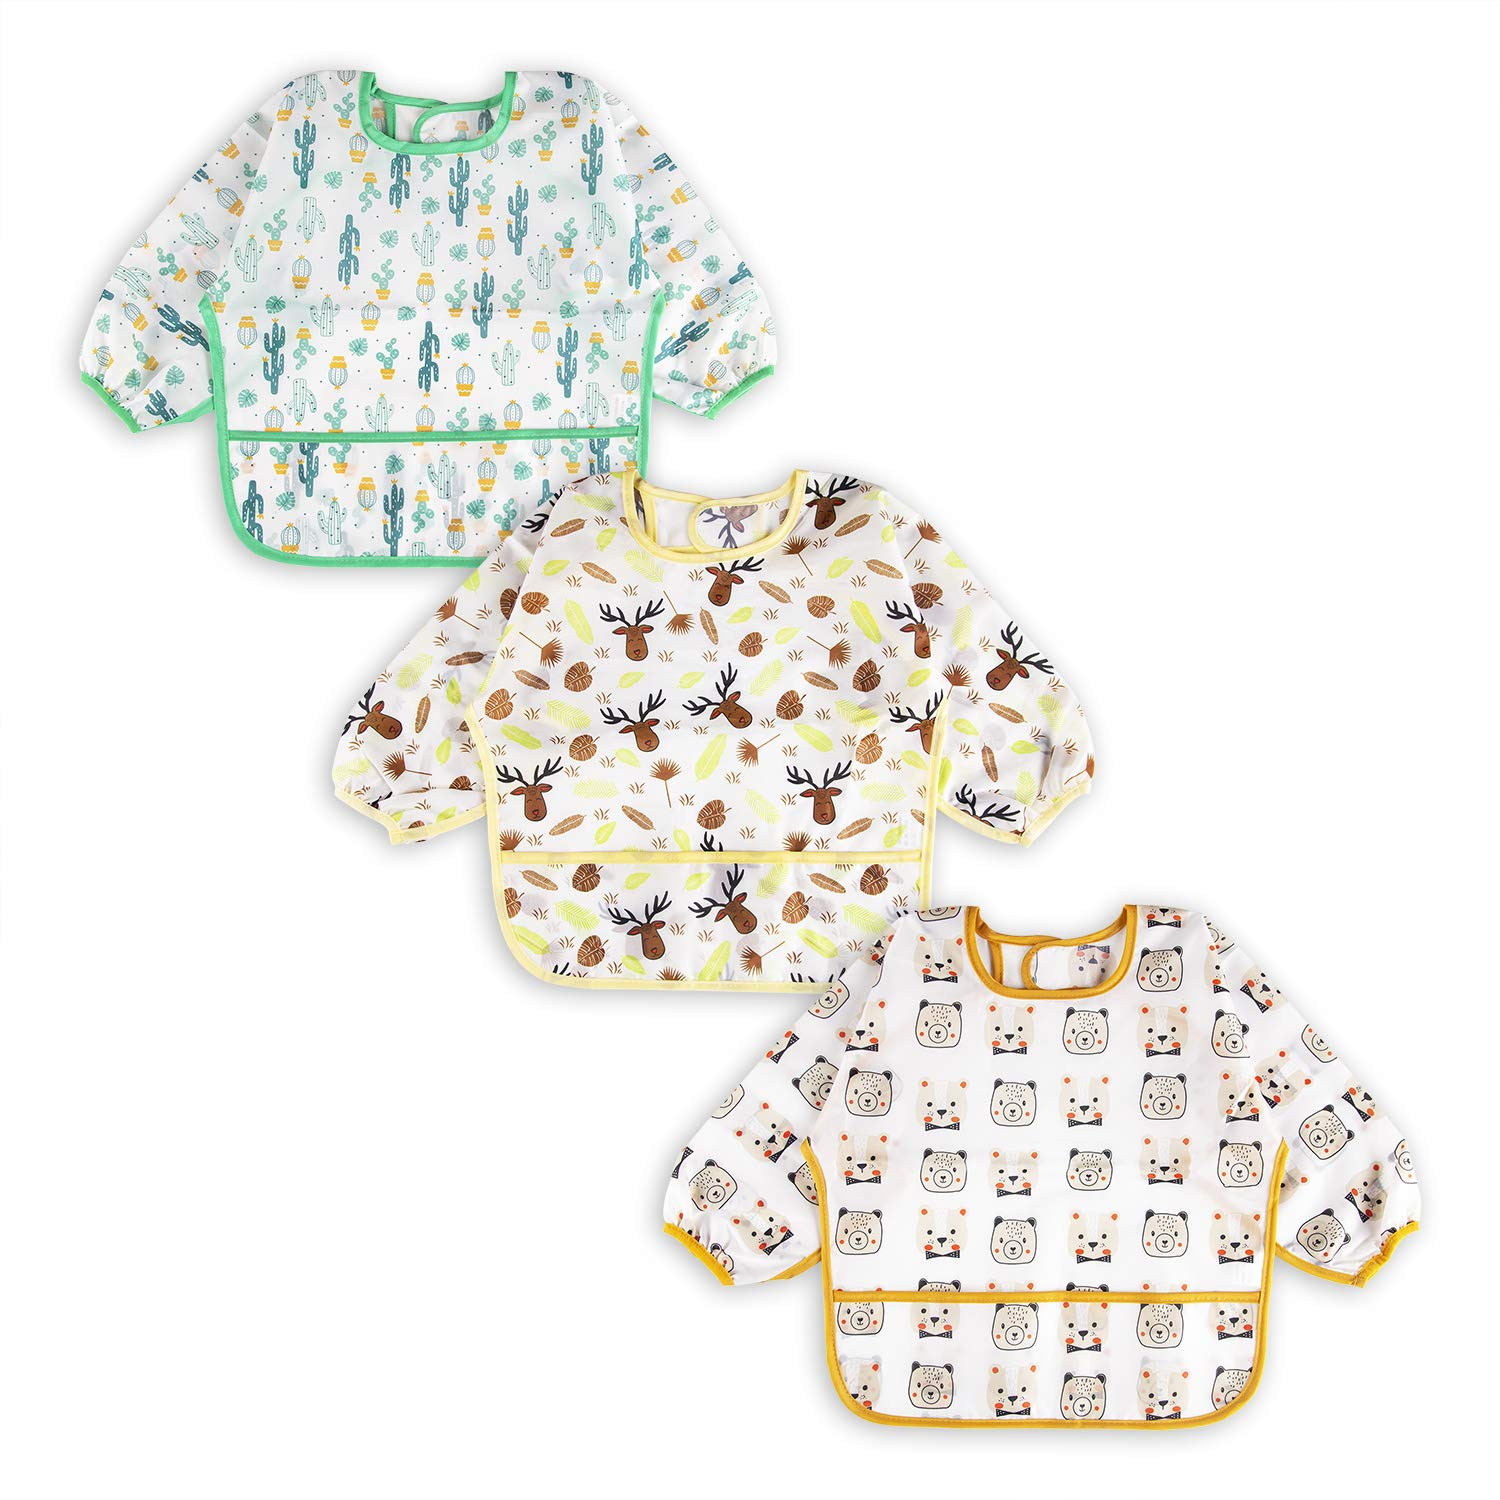 3 Pcs Long Sleeved Bib Set | Baby Waterproof Bibs with Pocket Bundle | Toddler Bib with Sleeves and Crumb Catcher | Stain and Odor Resistance Play Smock Apron - Pack of 3 | 12-24 Months